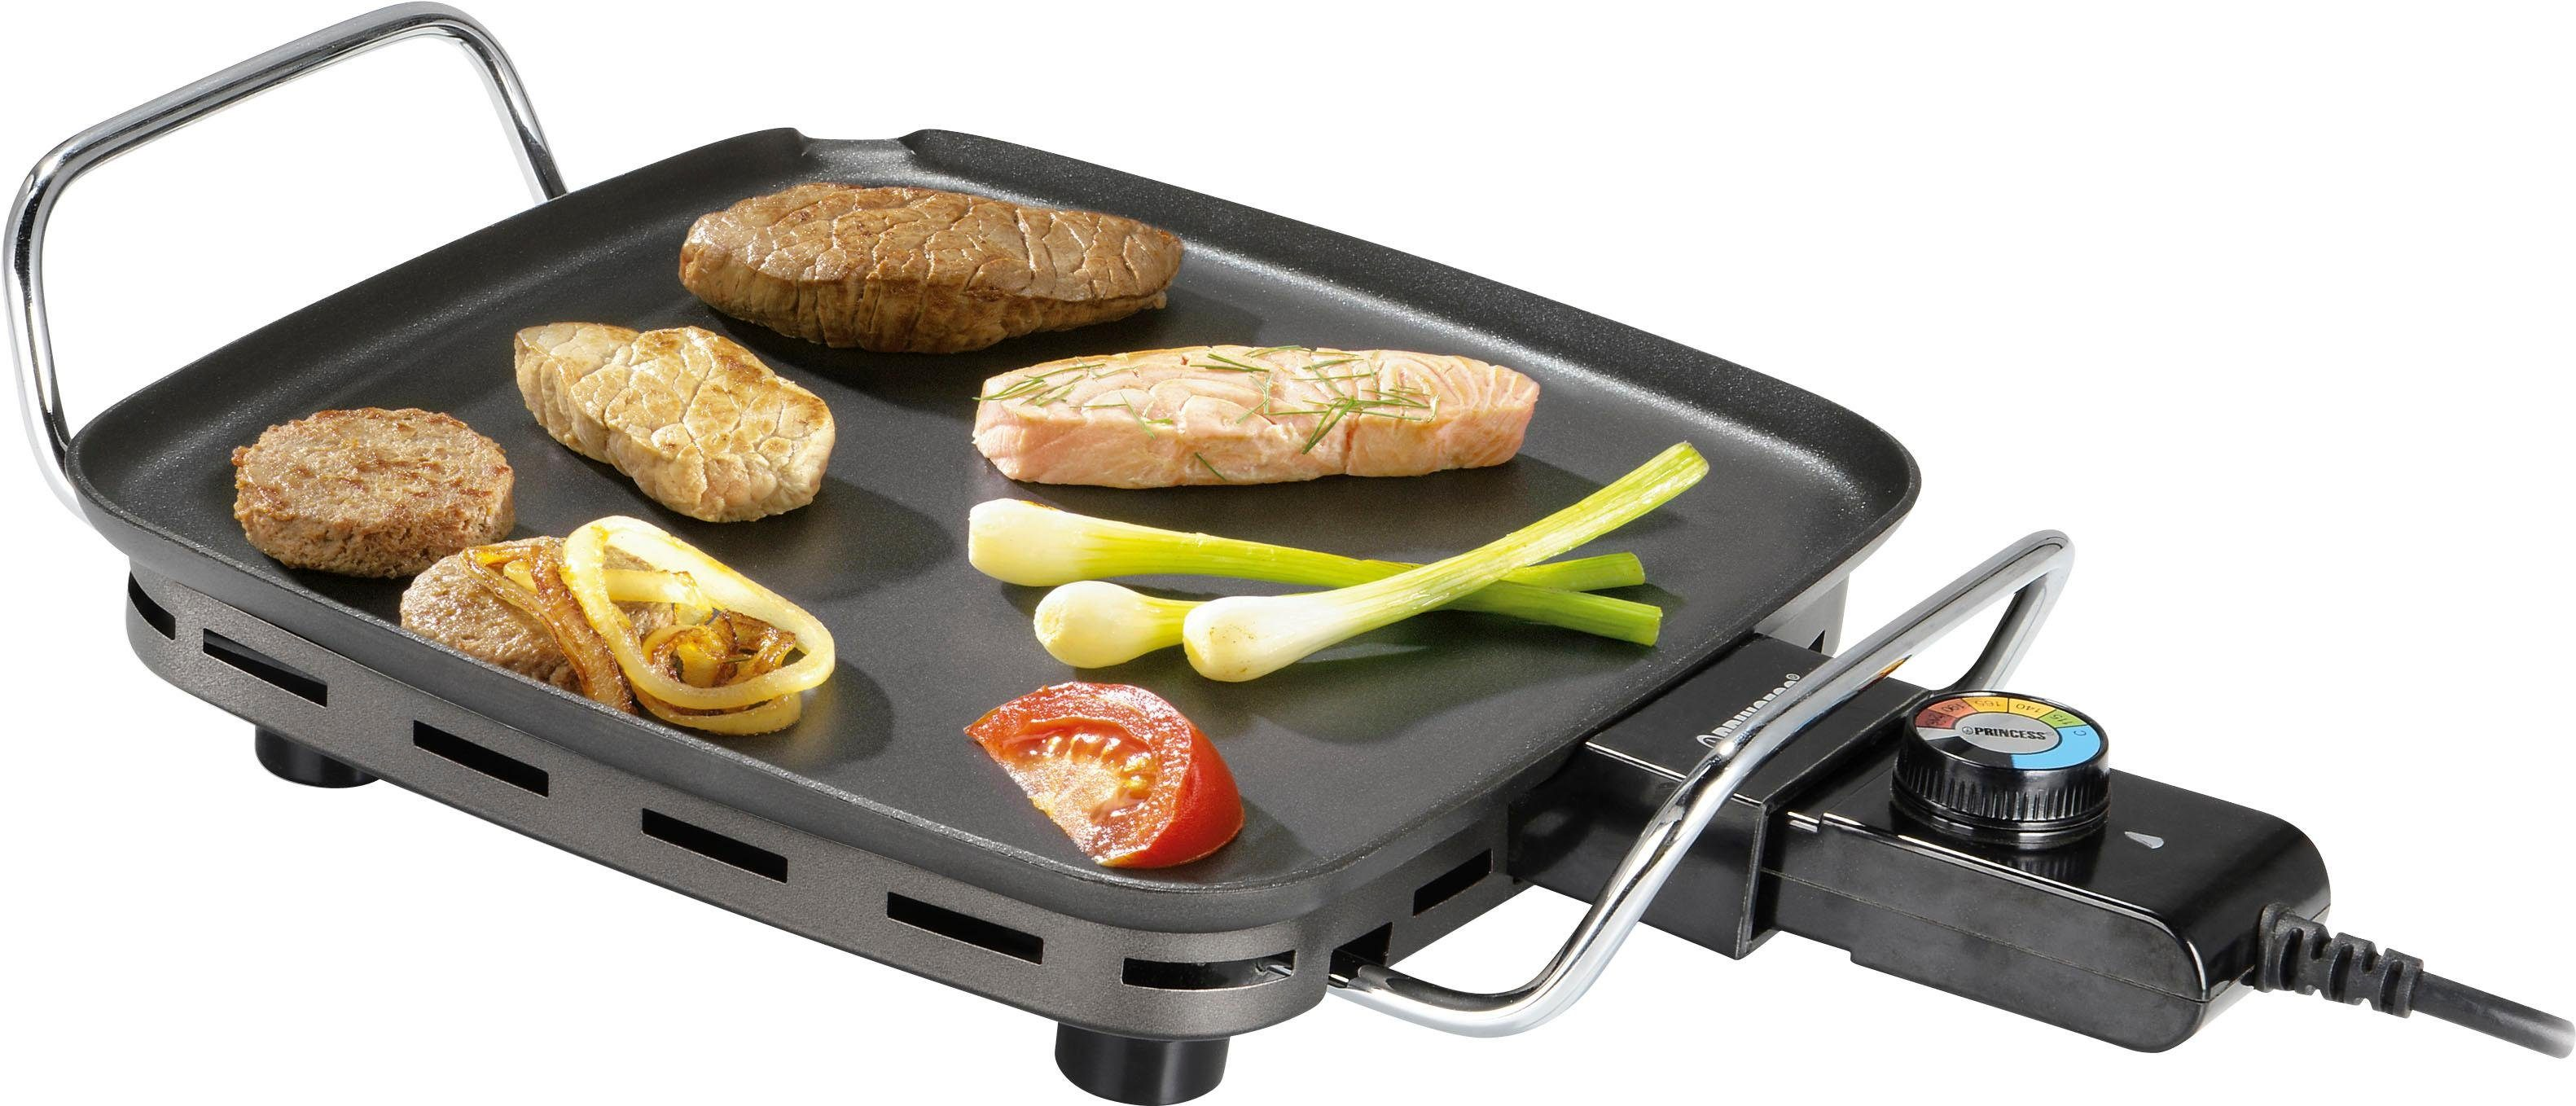 PRINCESS Tischgrill Mini 102210, 1900 W